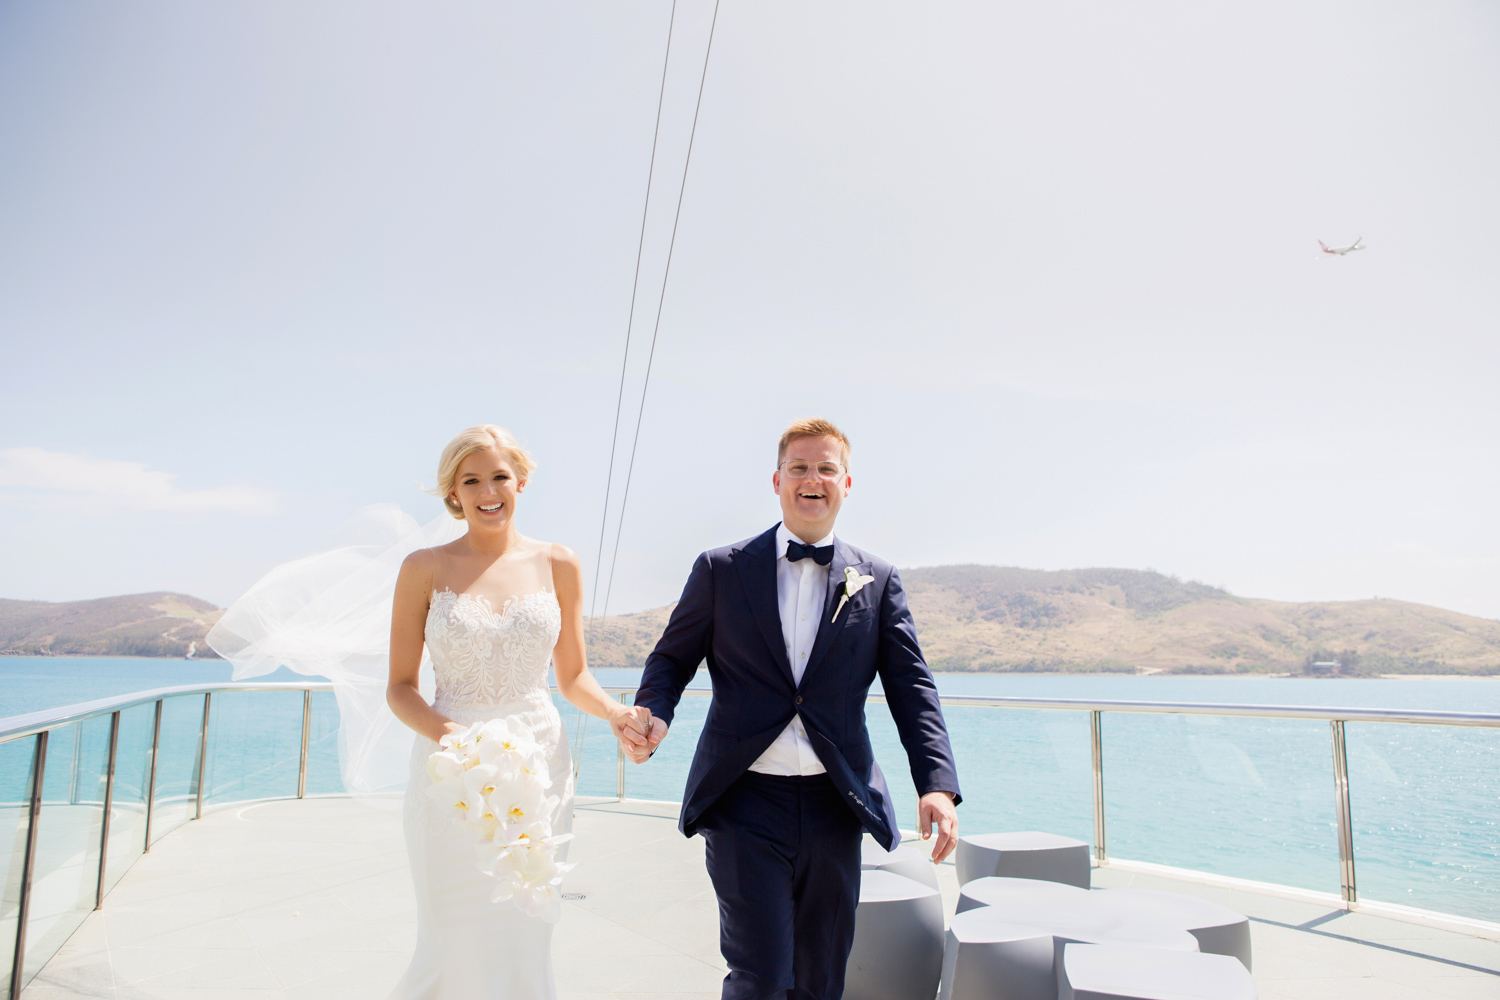 wedding-0135-yachtclub-veil-wind-ocean-excited-australia.jpg